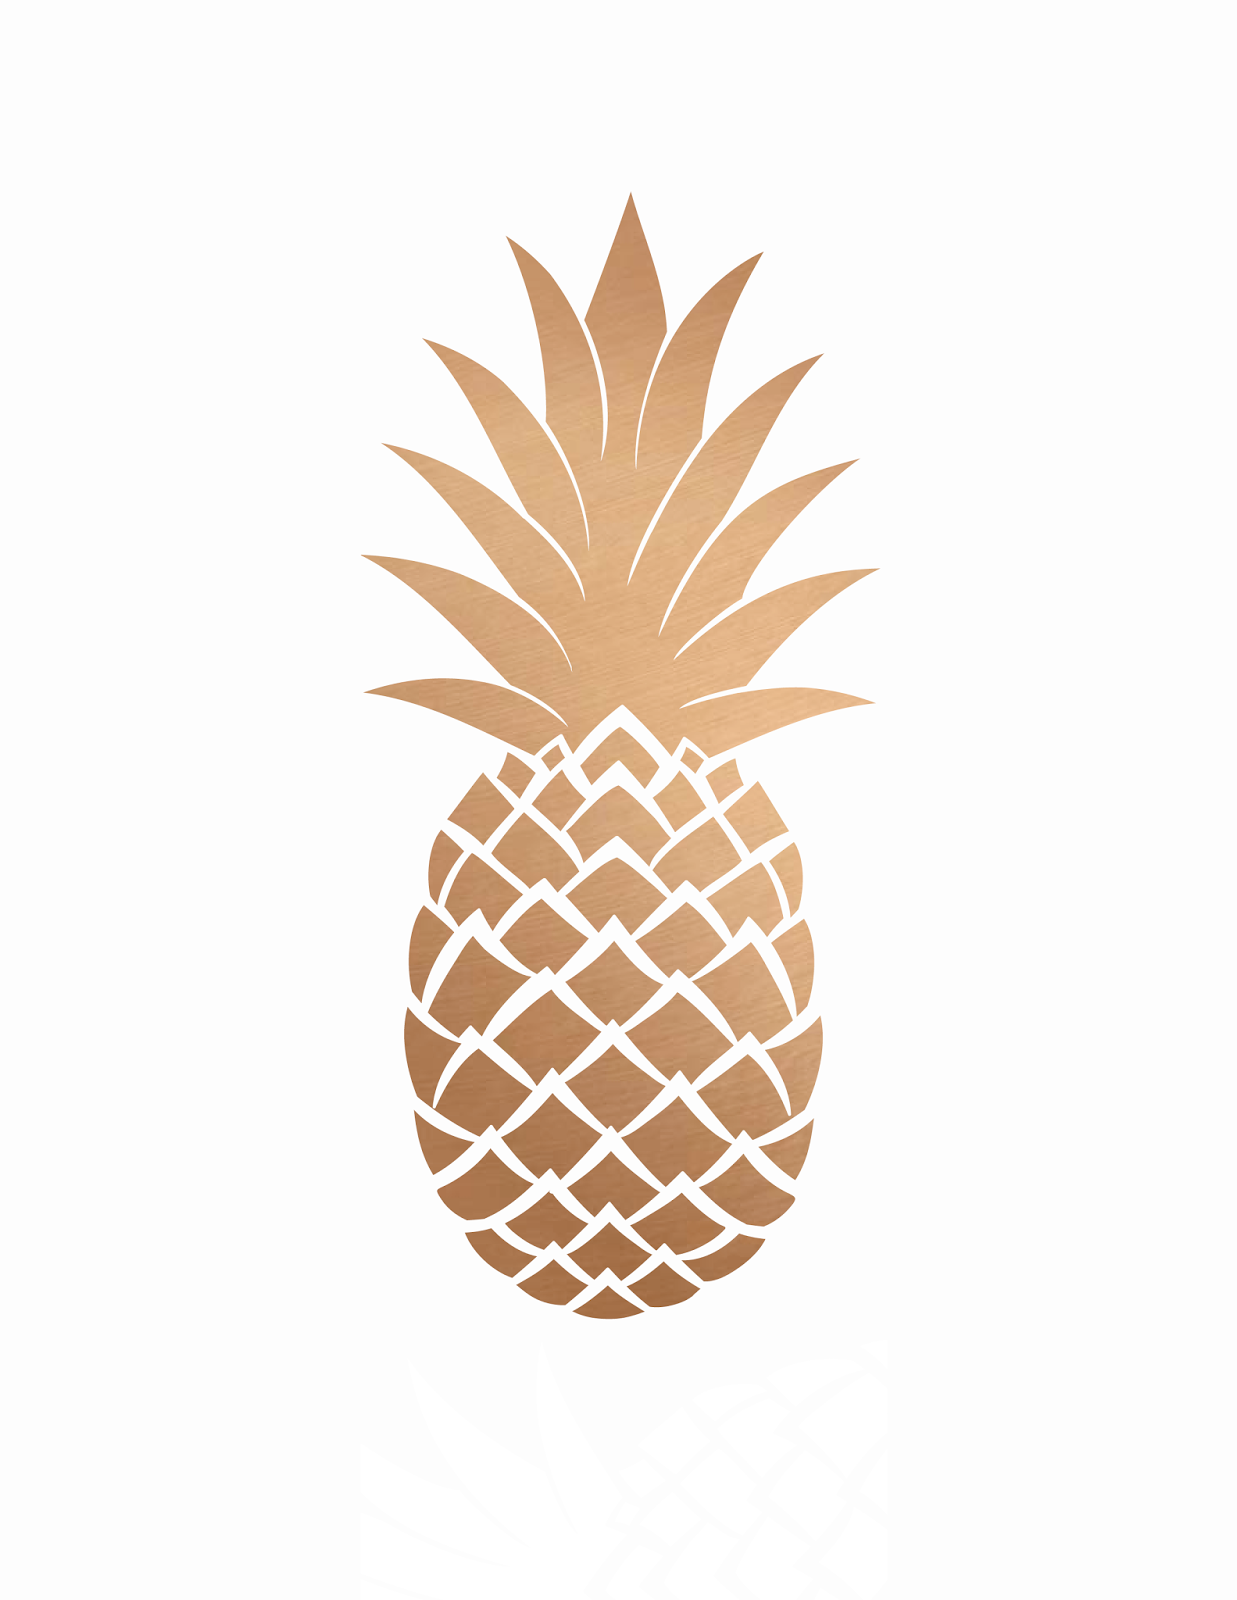 Pineapple clipart rose gold. Free printables add some